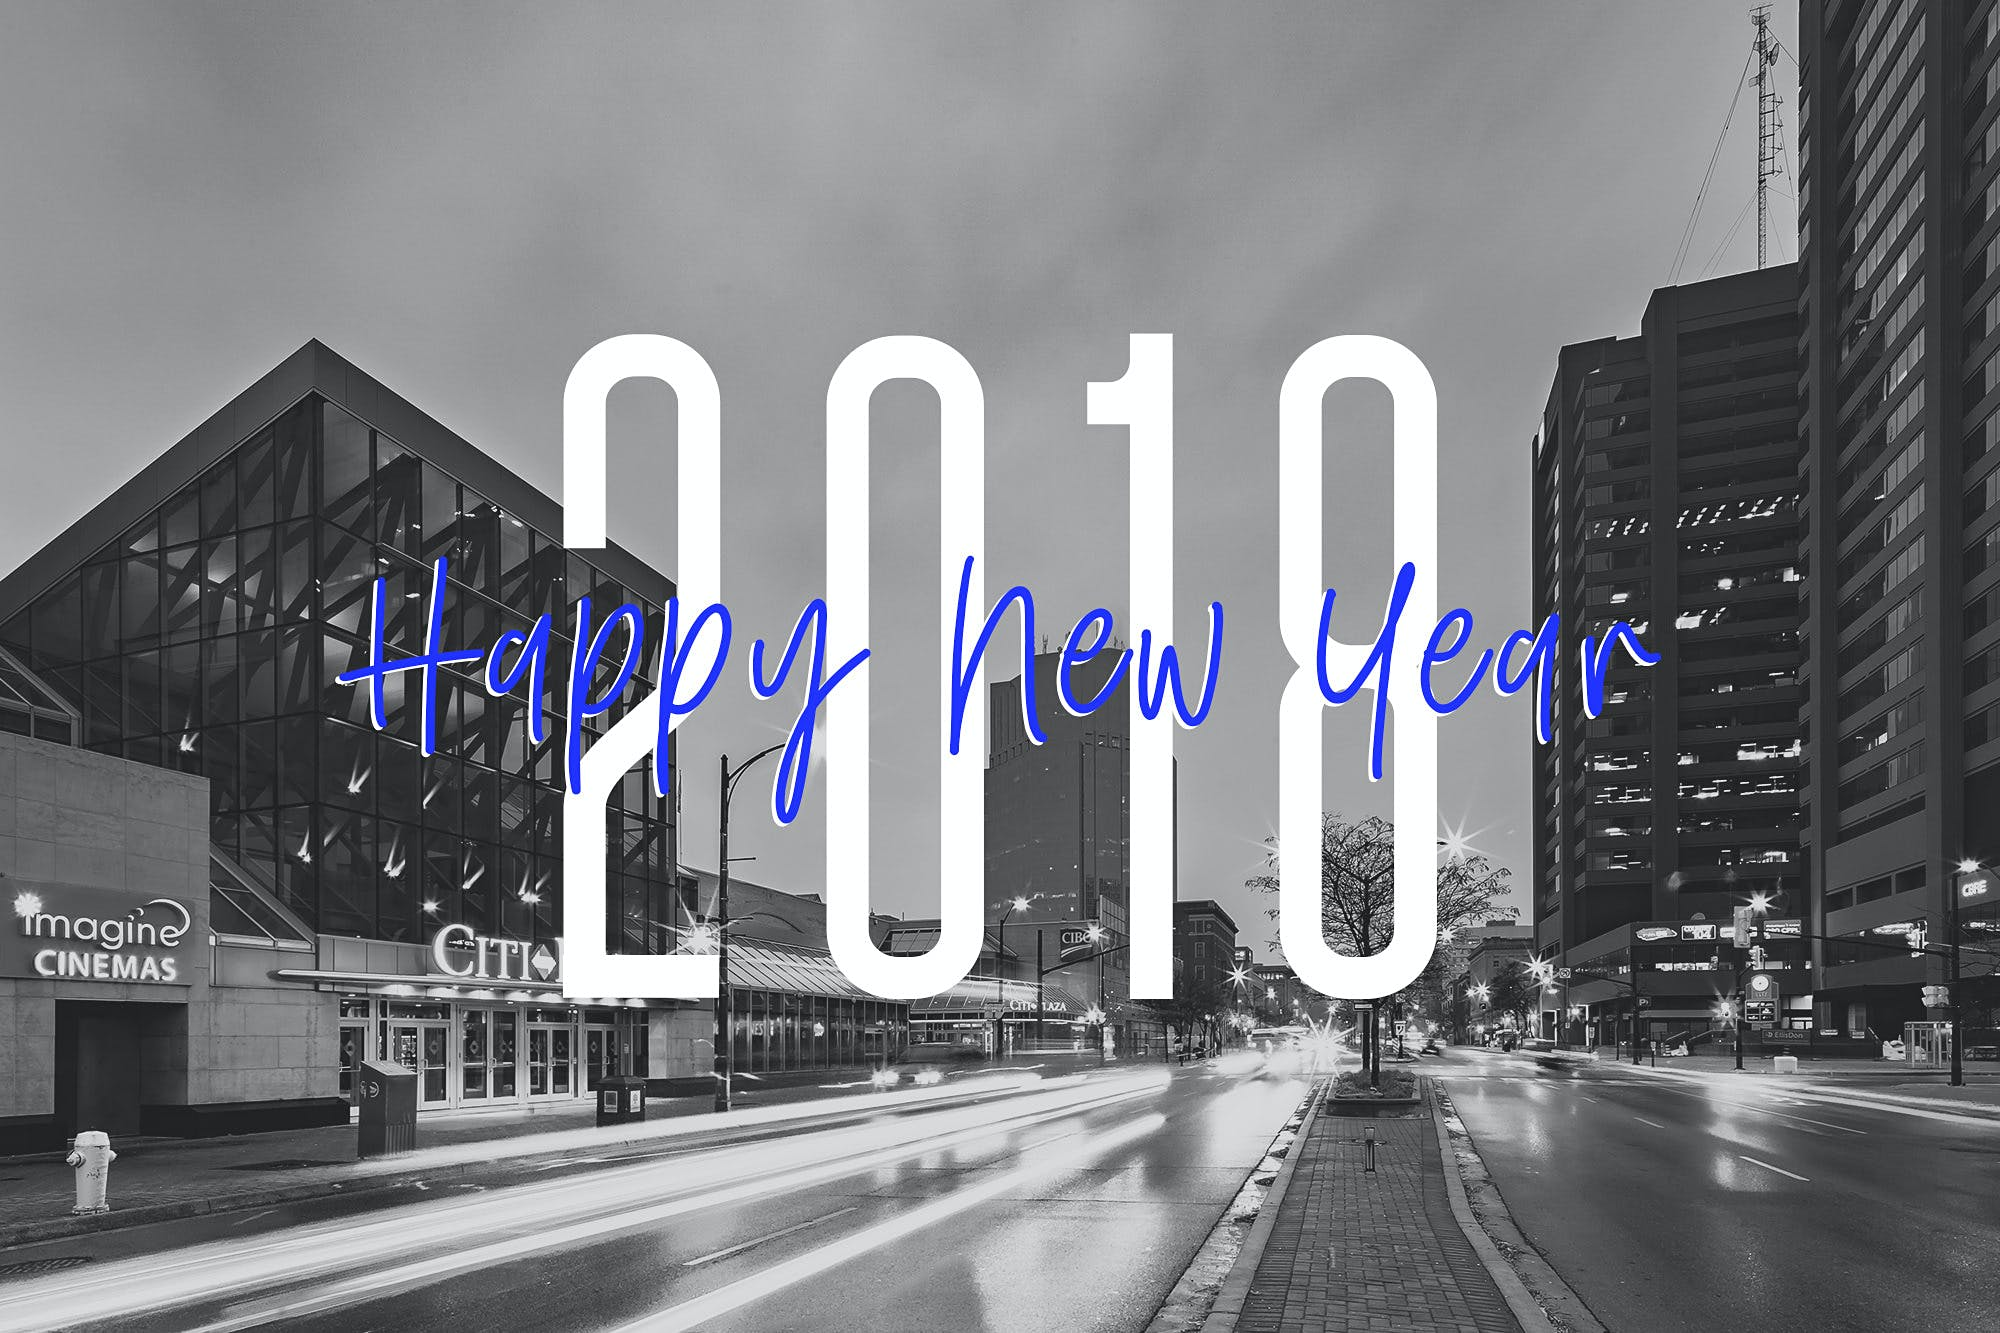 2018 Resolutions for Photography and Business